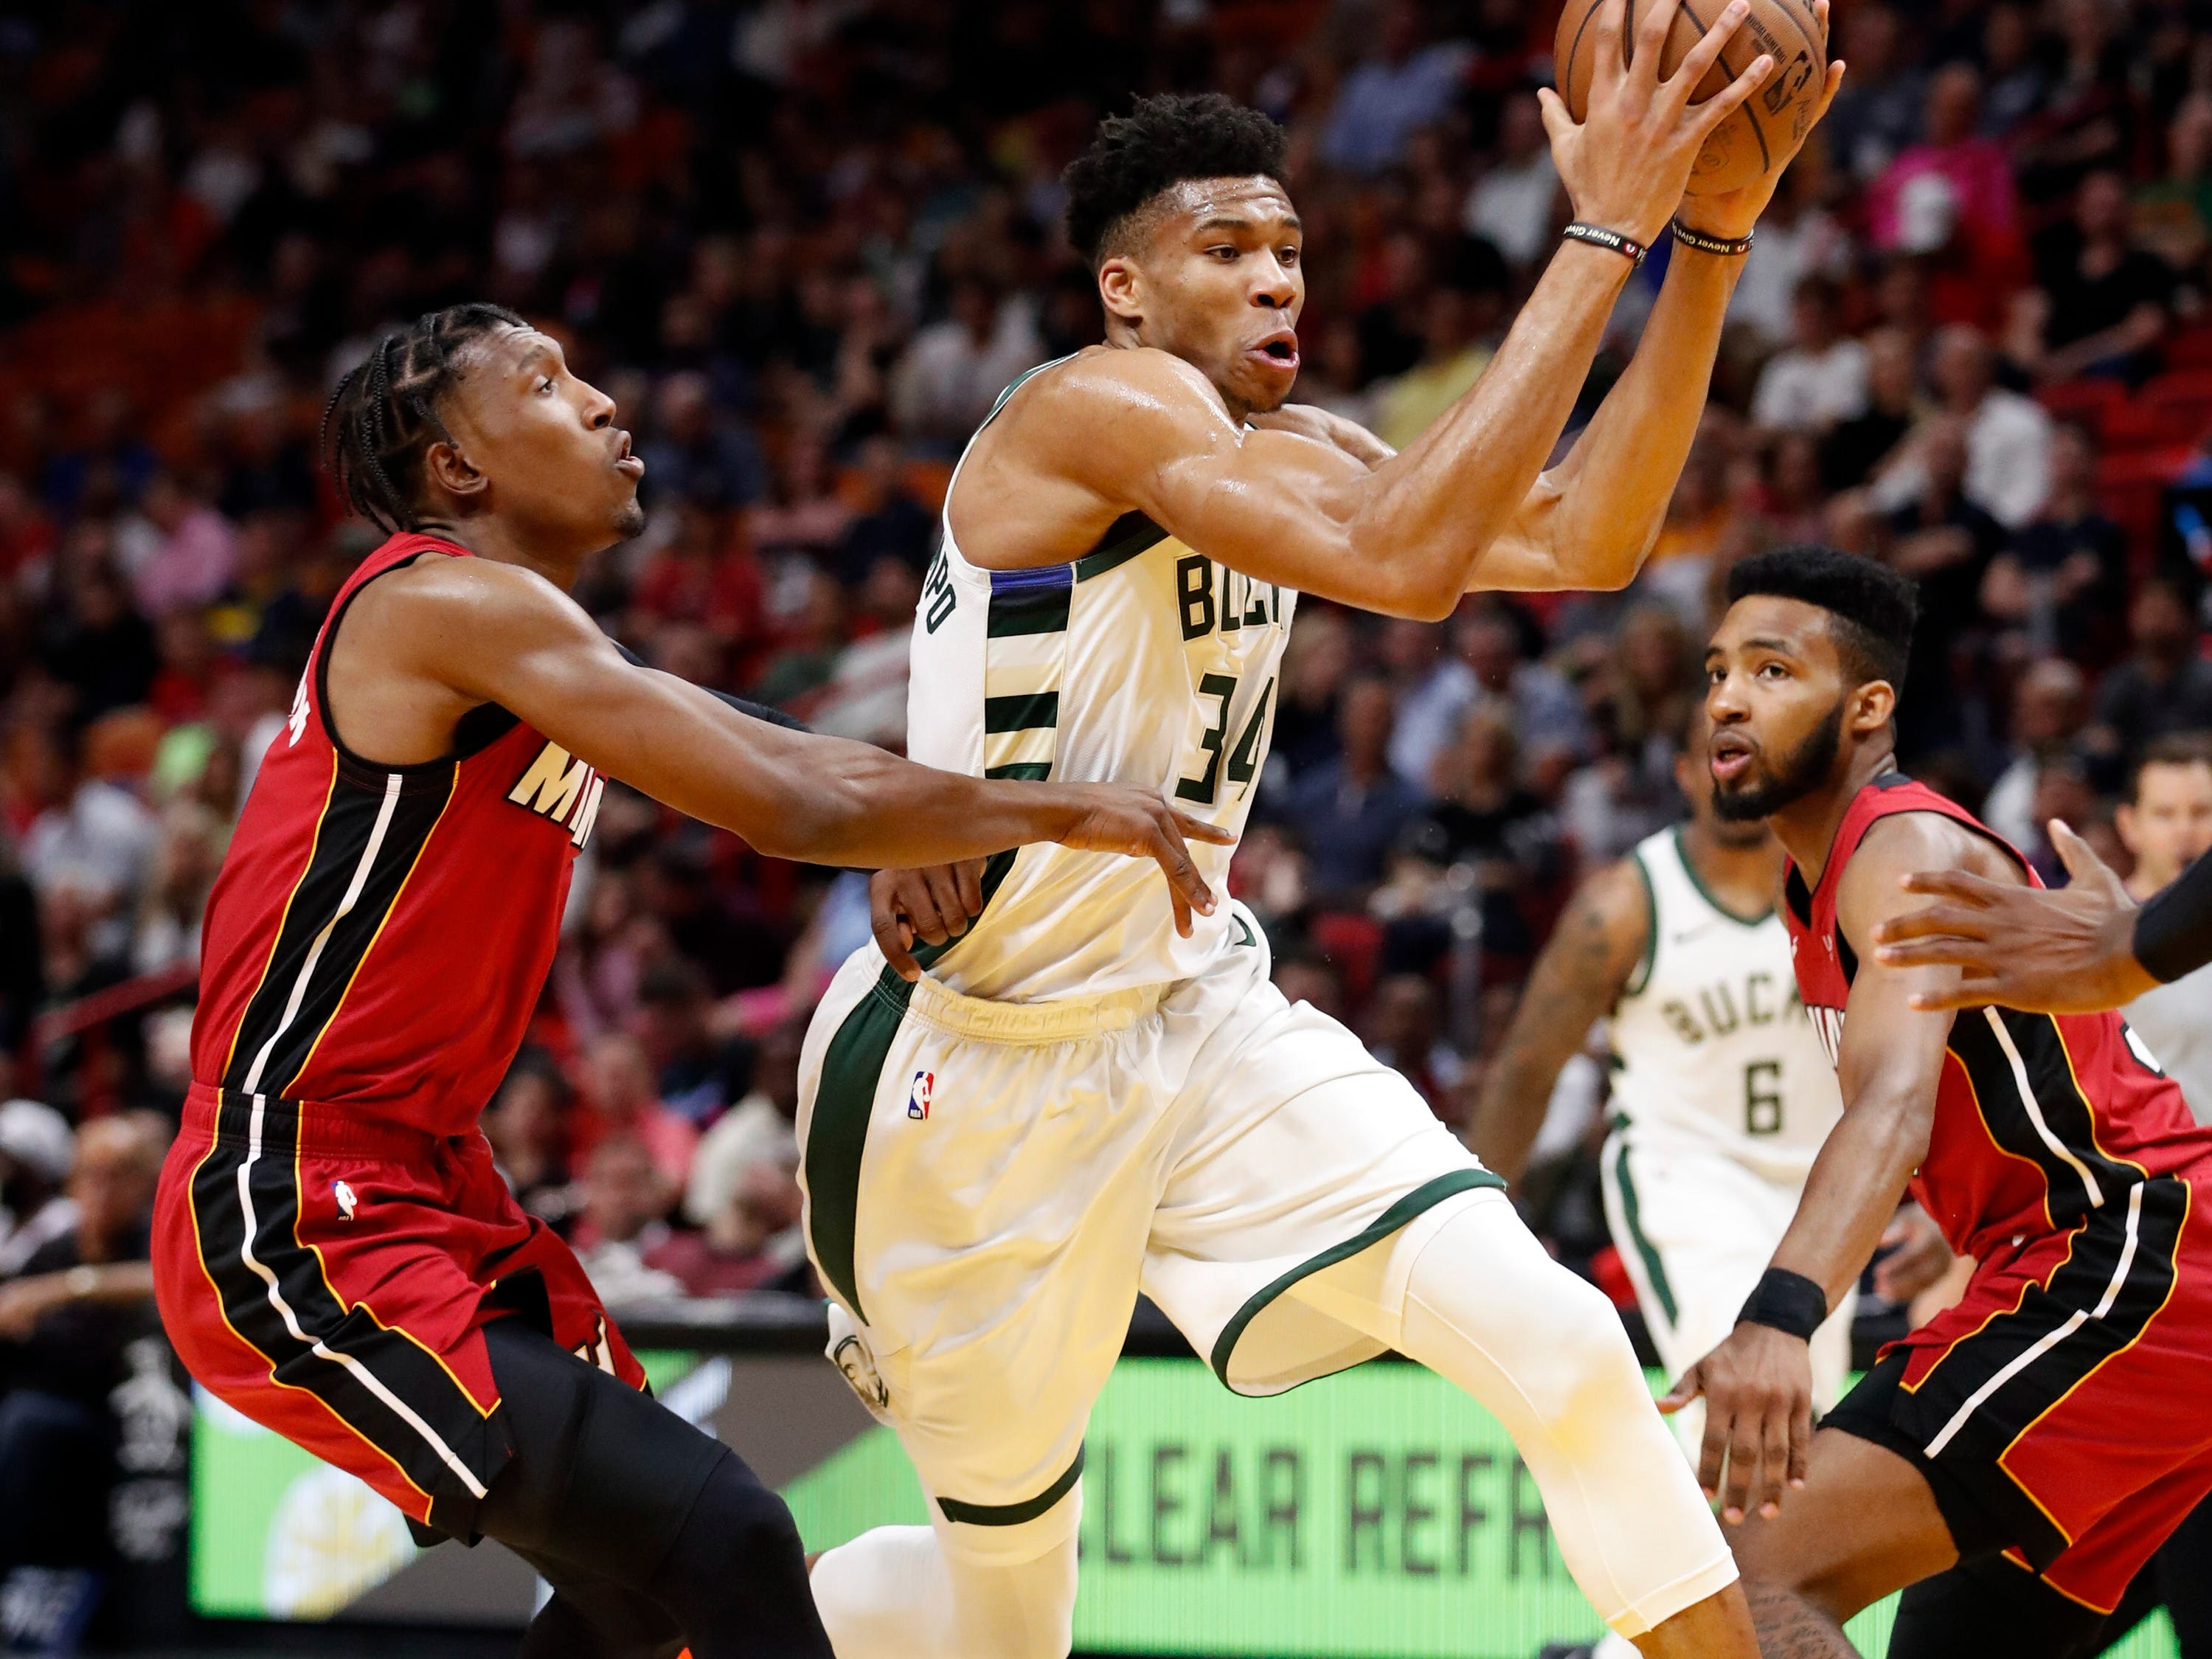 Giannis Antetokounmpo splits the defense and drives to the basket Friday night.